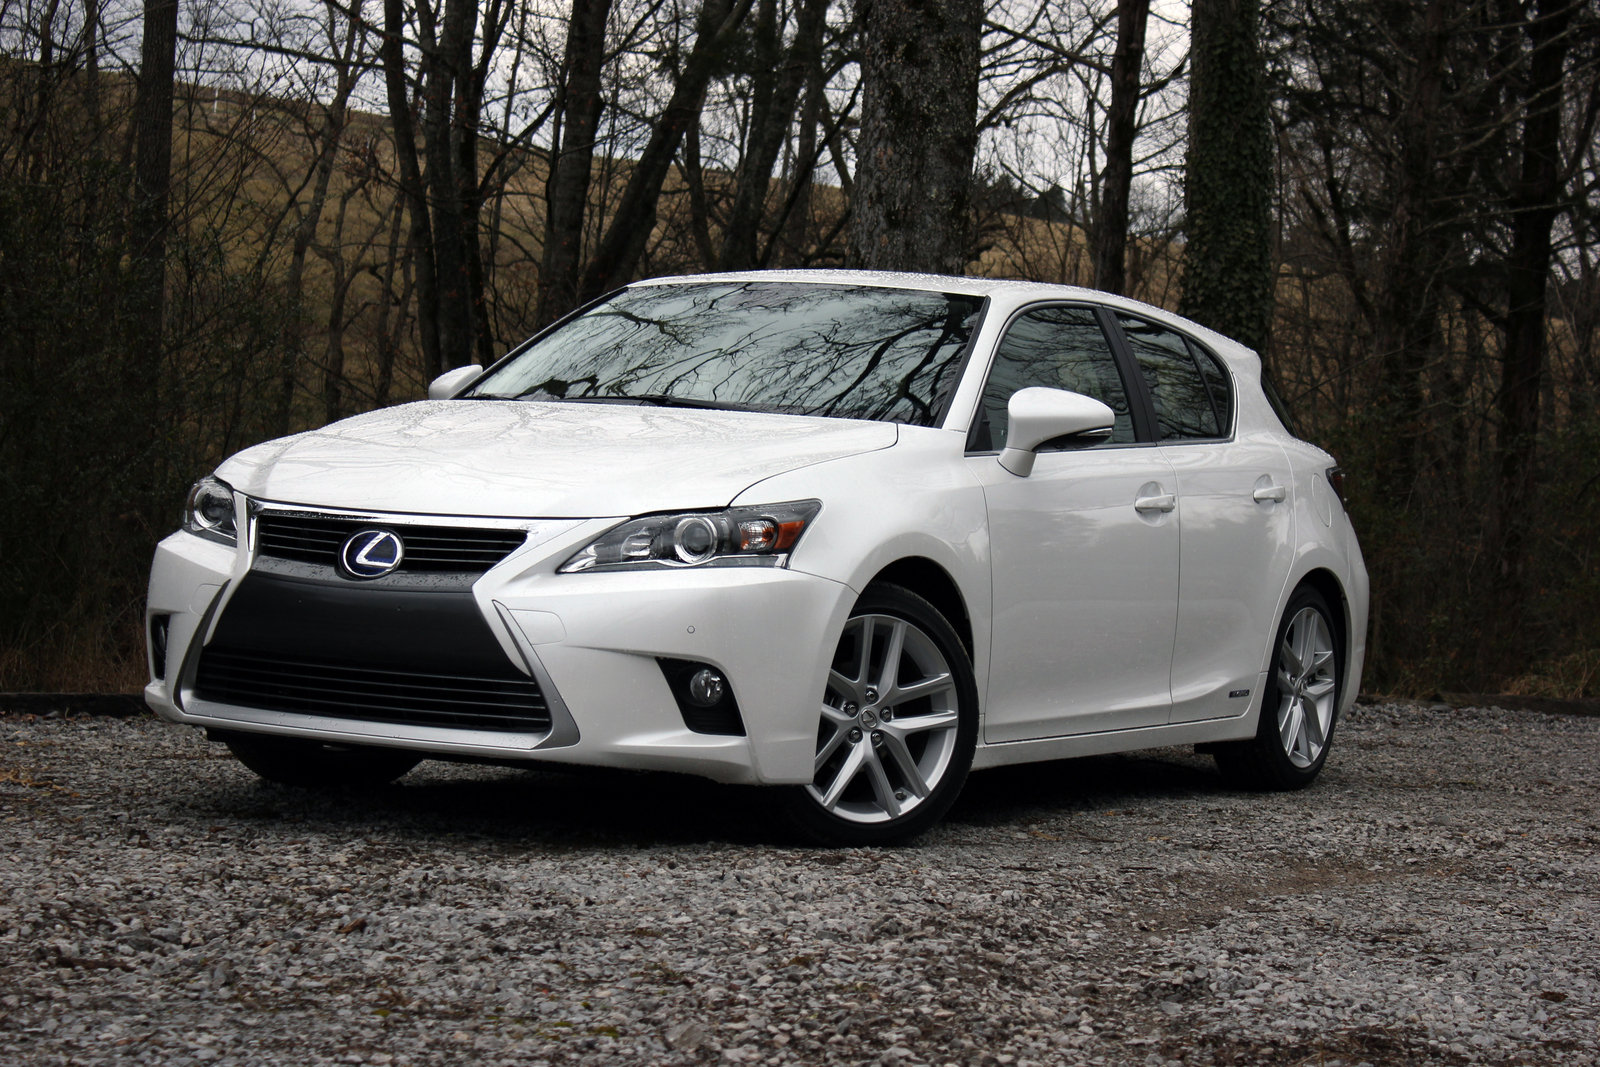 2015 lexus ct 200h driven picture 615194 car review top speed. Black Bedroom Furniture Sets. Home Design Ideas